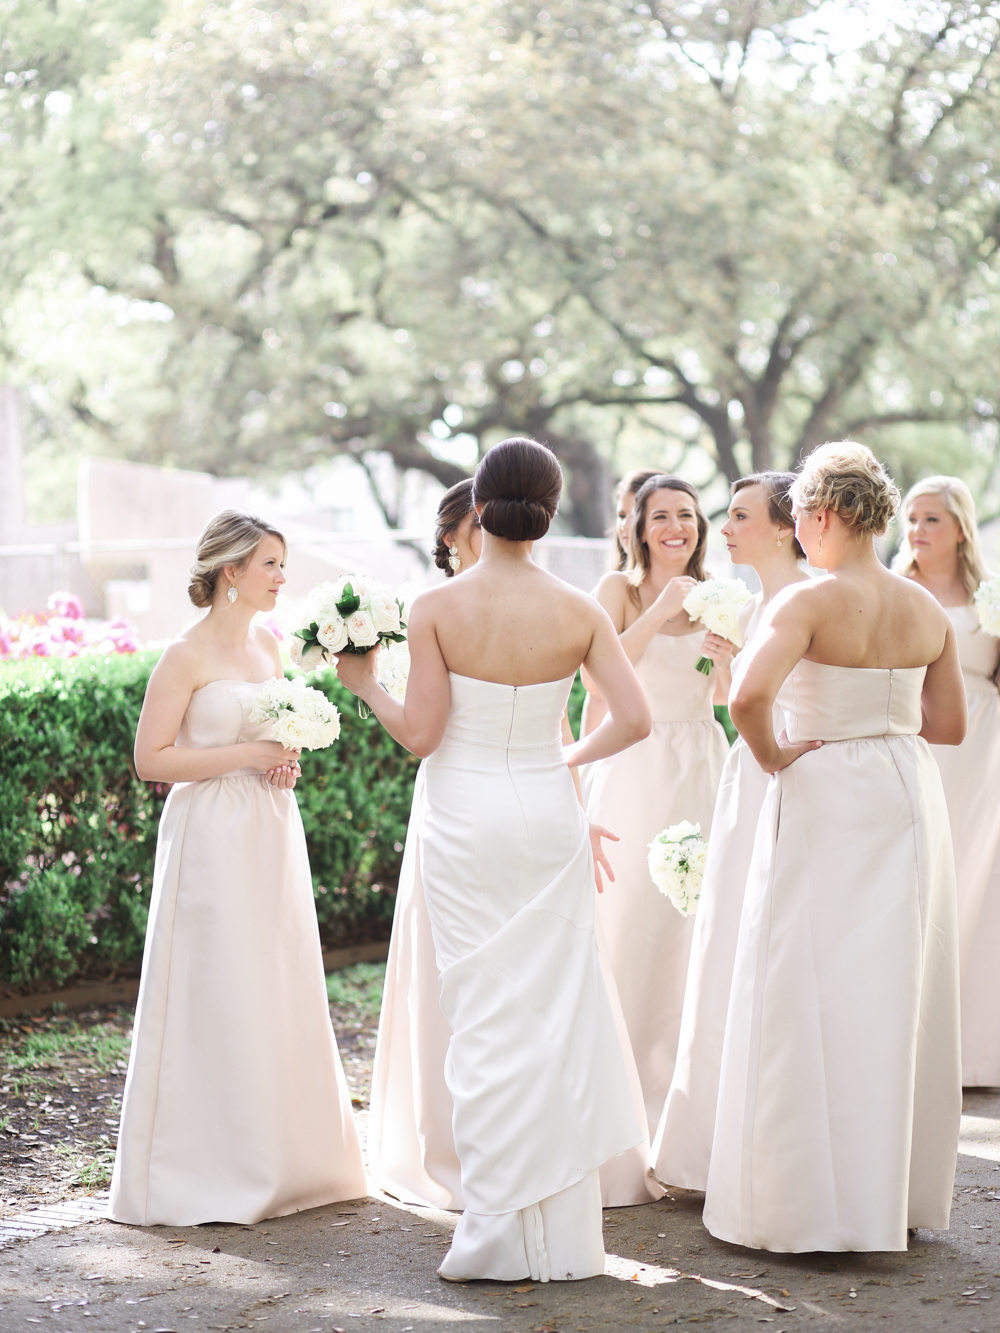 Christine Gosch - destination film photographer - houston wedding photographer - fine art film photographer - elopement photographer - destination wedding - understated wedding - simple beautiful wedding photography-69.jpg